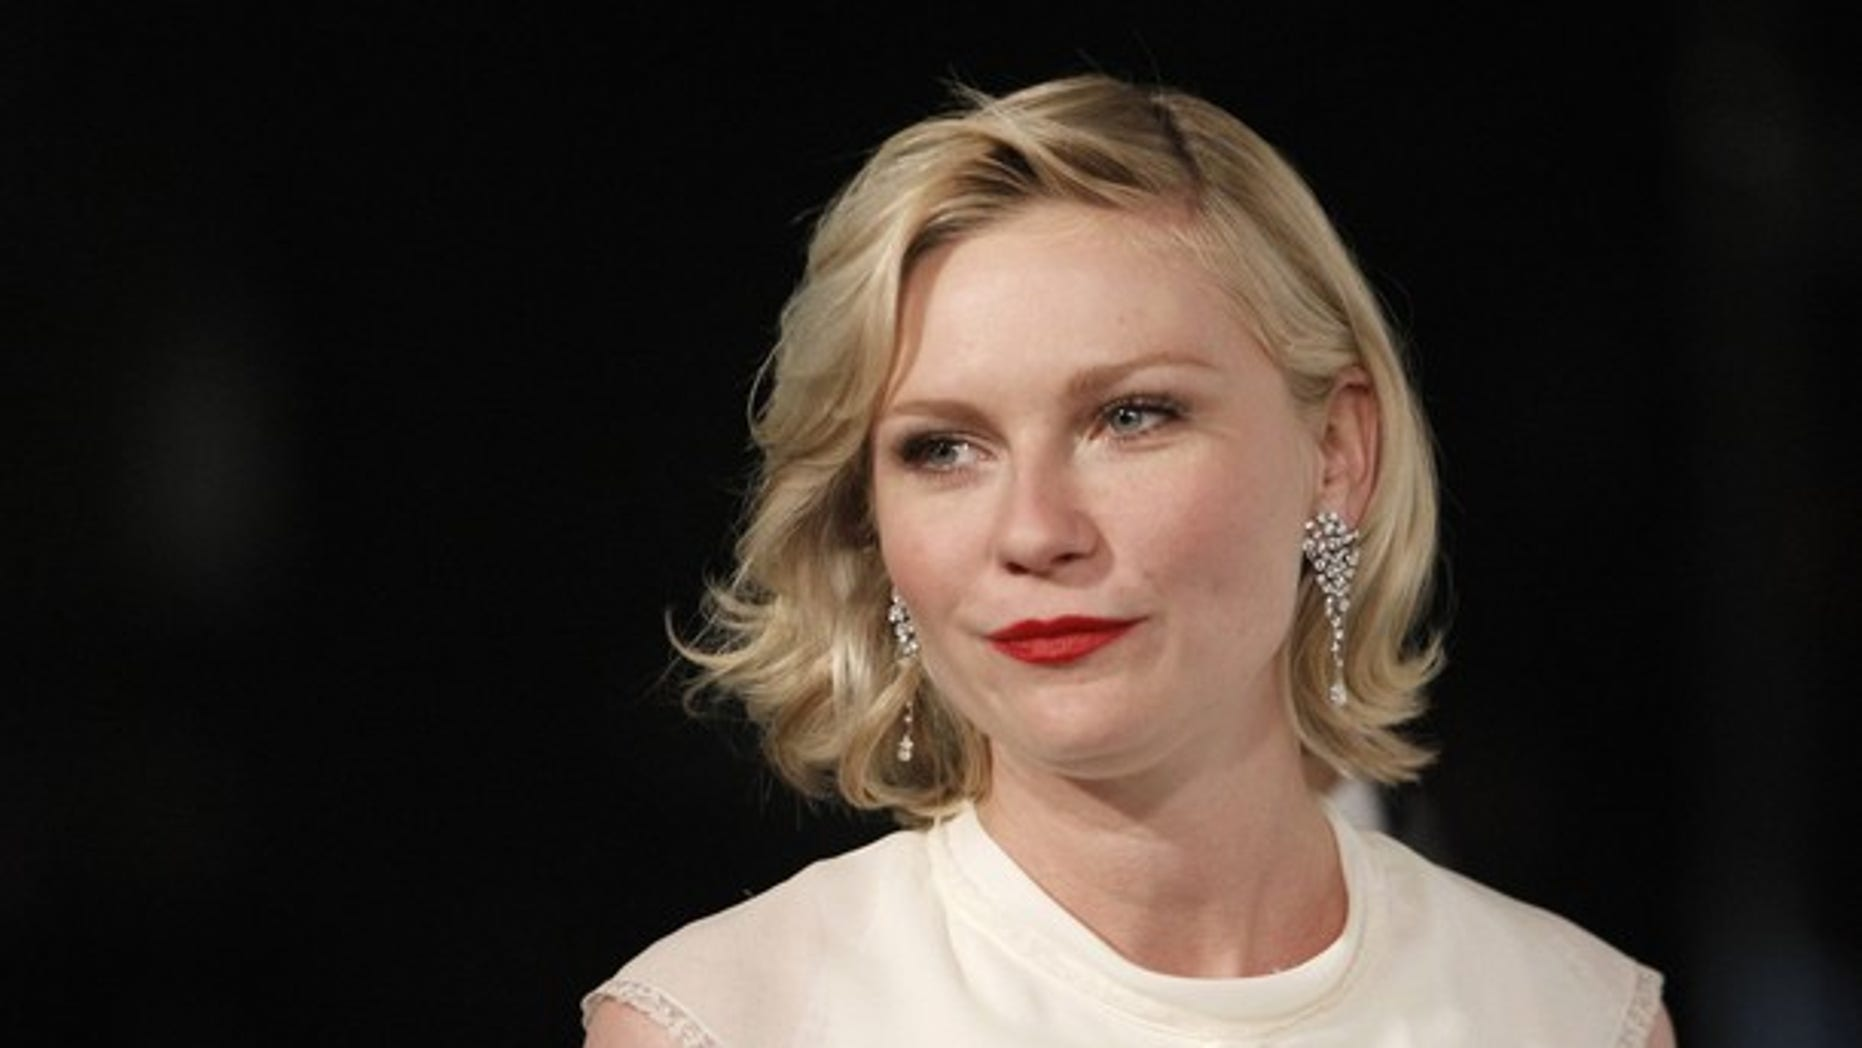 Nov. 13: Actress Kirsten Dunst arrives at the annual gala for The Museum of Contemporary Art, Los Angeles.